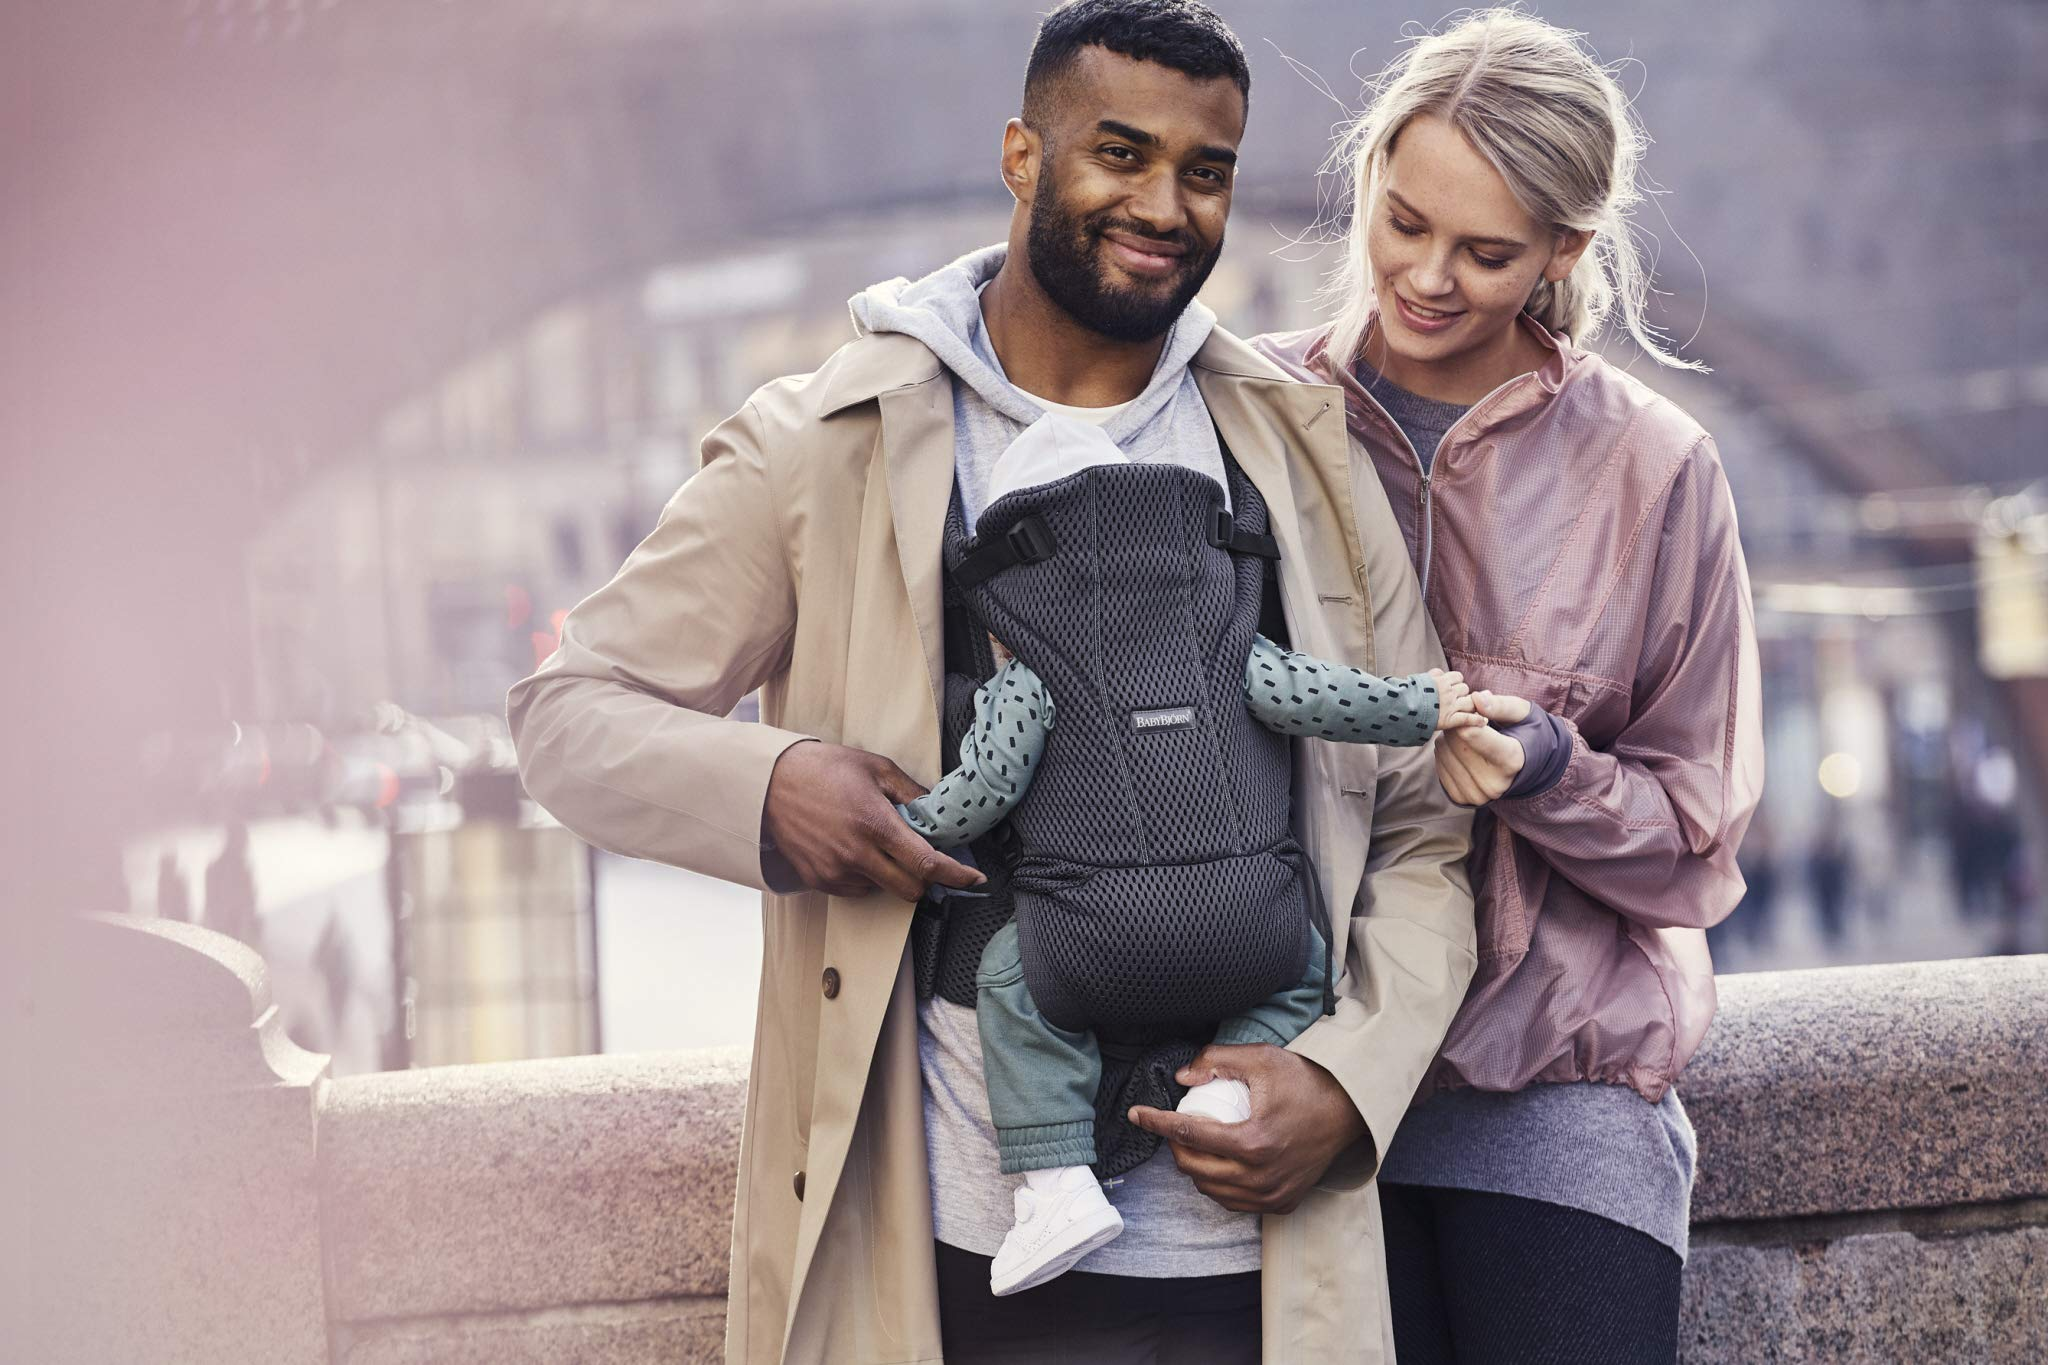 BABYBJÖRN Baby Carrier Move, 3D Mesh, Anthracite Baby Bjorn Excellent comfort with built-in back support and waist belt Easy to put on and take off Soft and airy design in cool 3D mesh 8